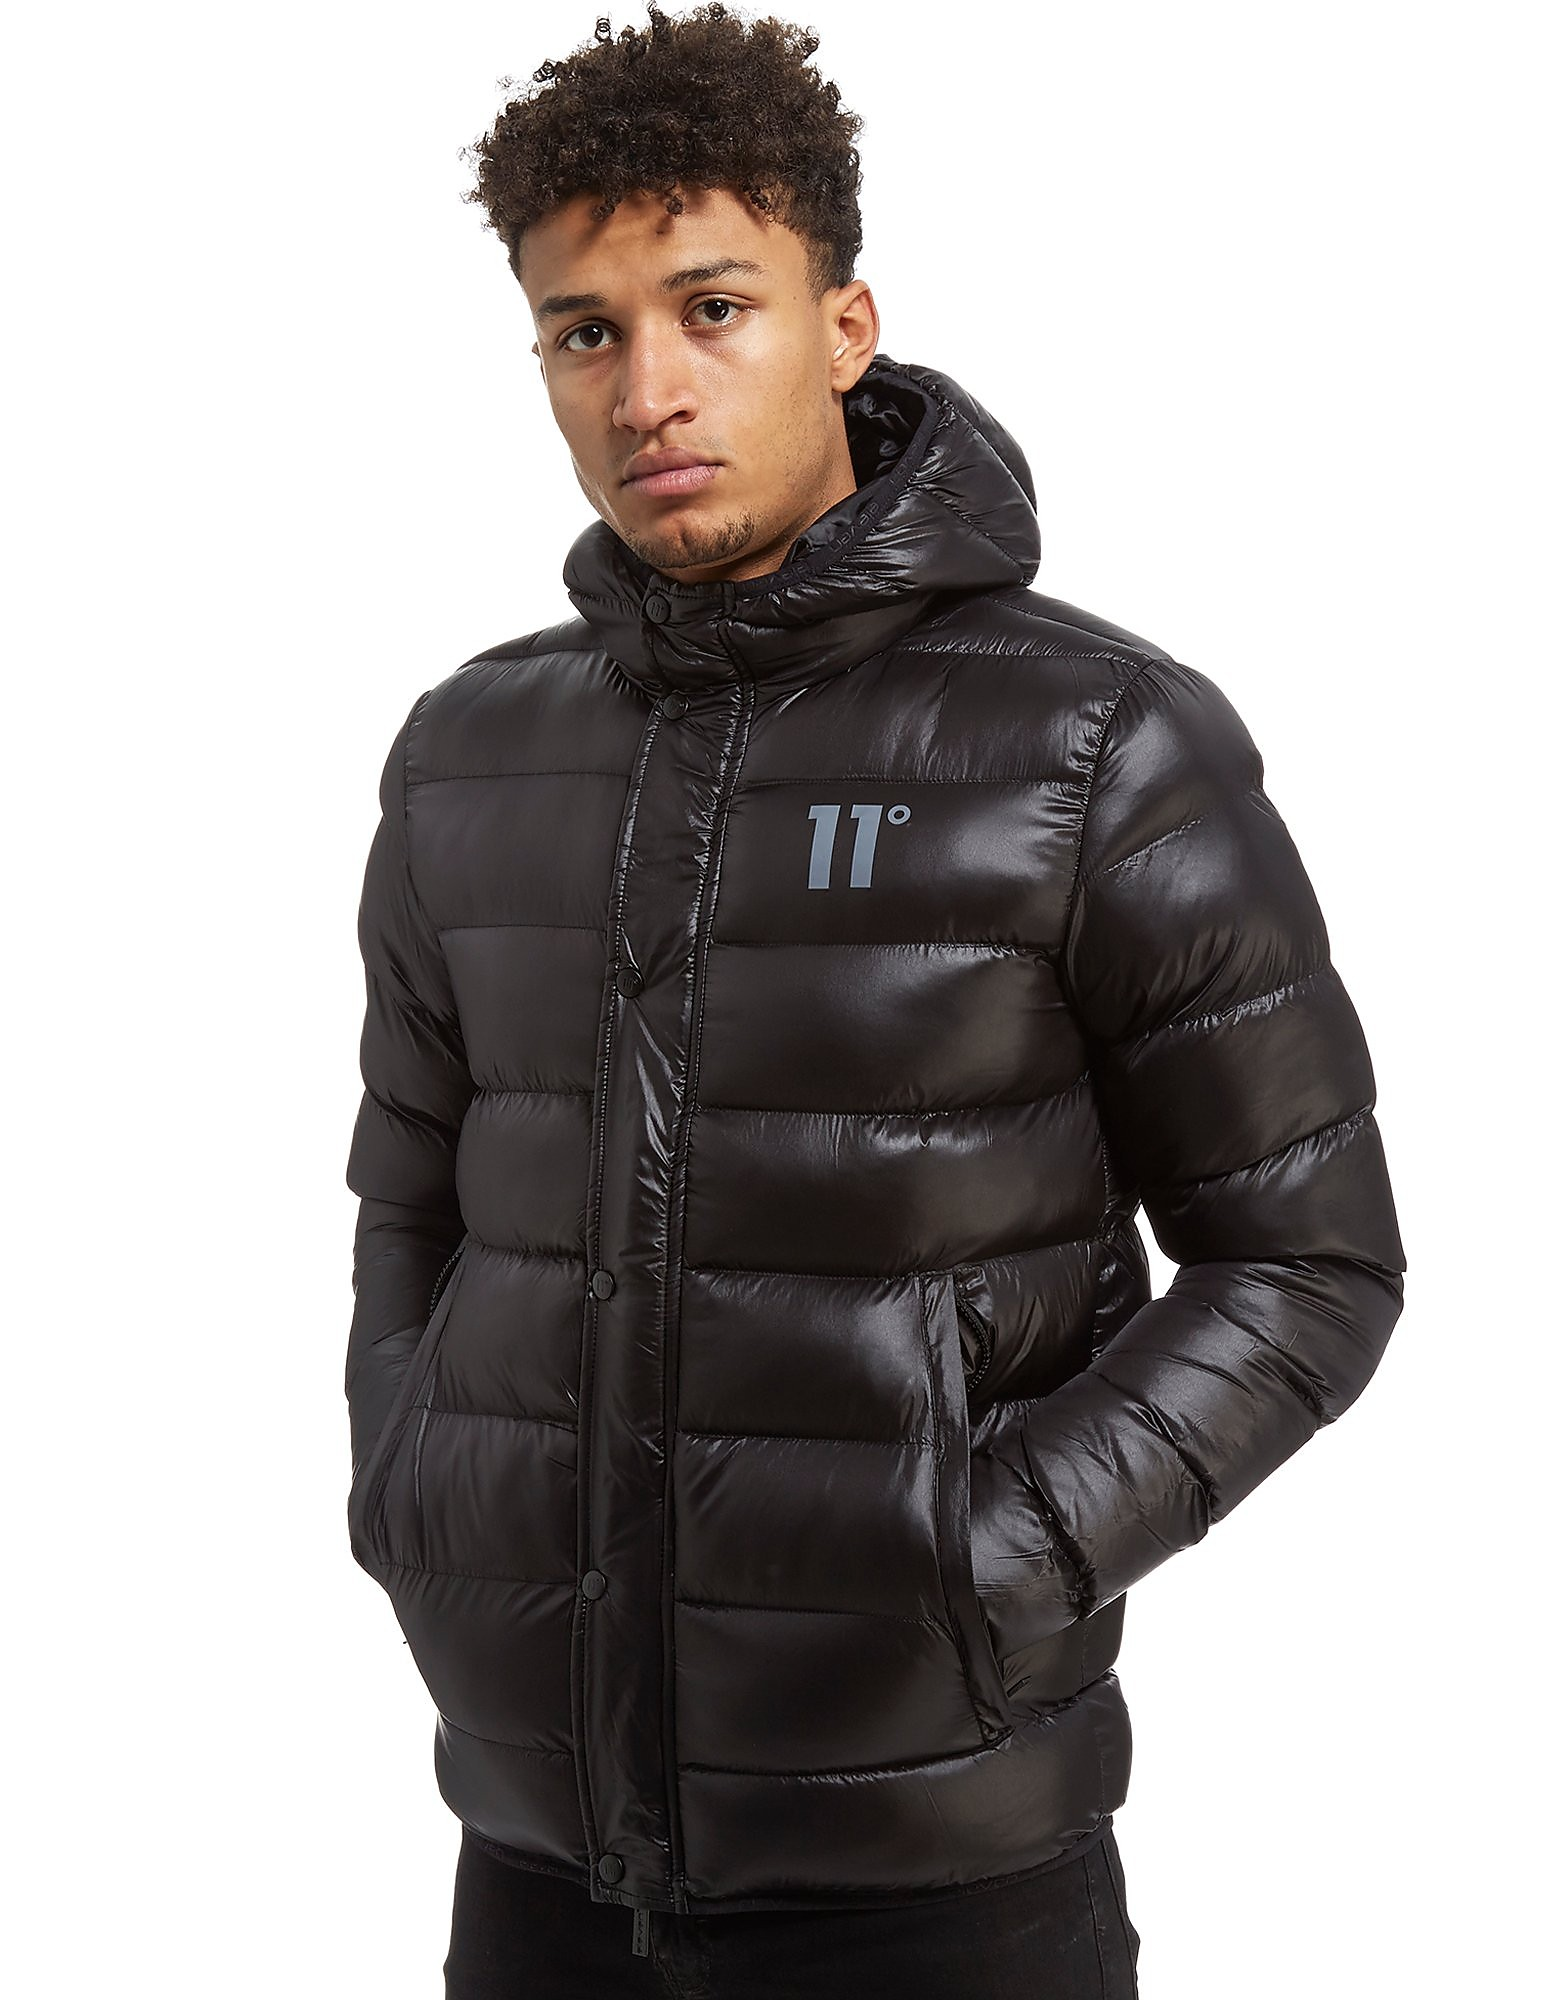 11 Degrees Strike Padded Jacket